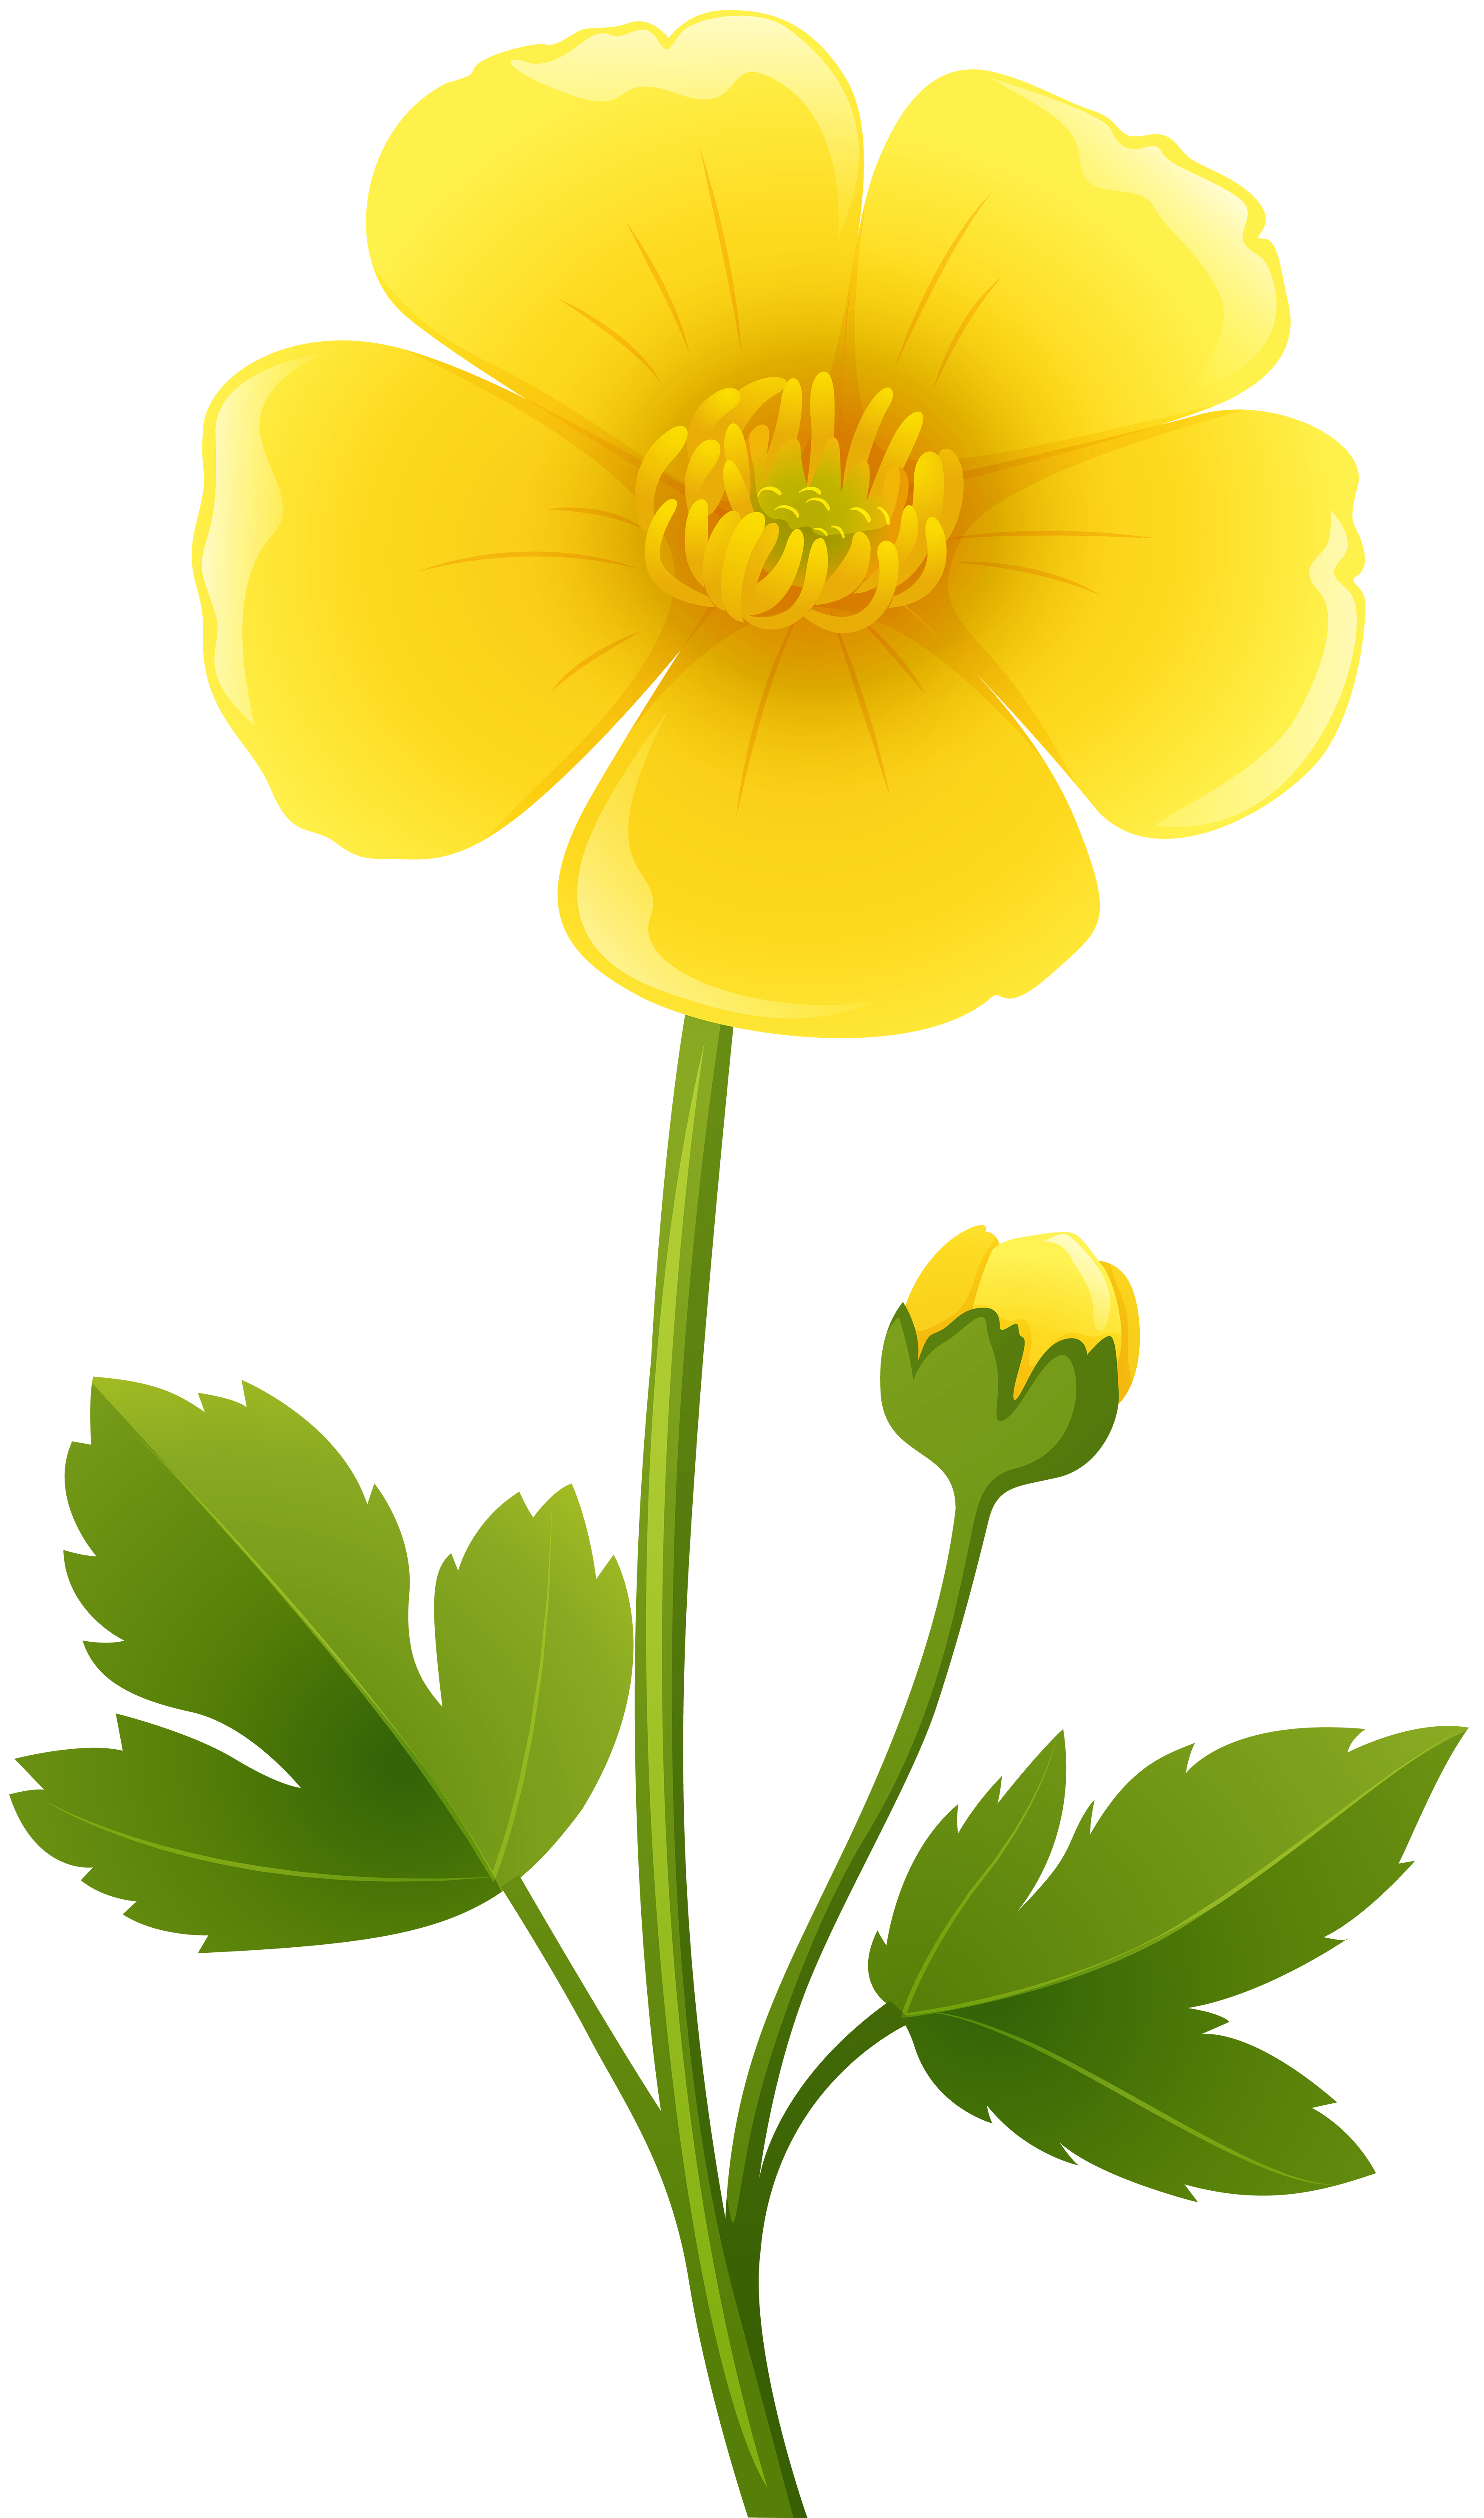 Buttercup flower clipart at getdrawings free for personal use 3492x5925 yellow flower transparent png clip art image buttercups mightylinksfo